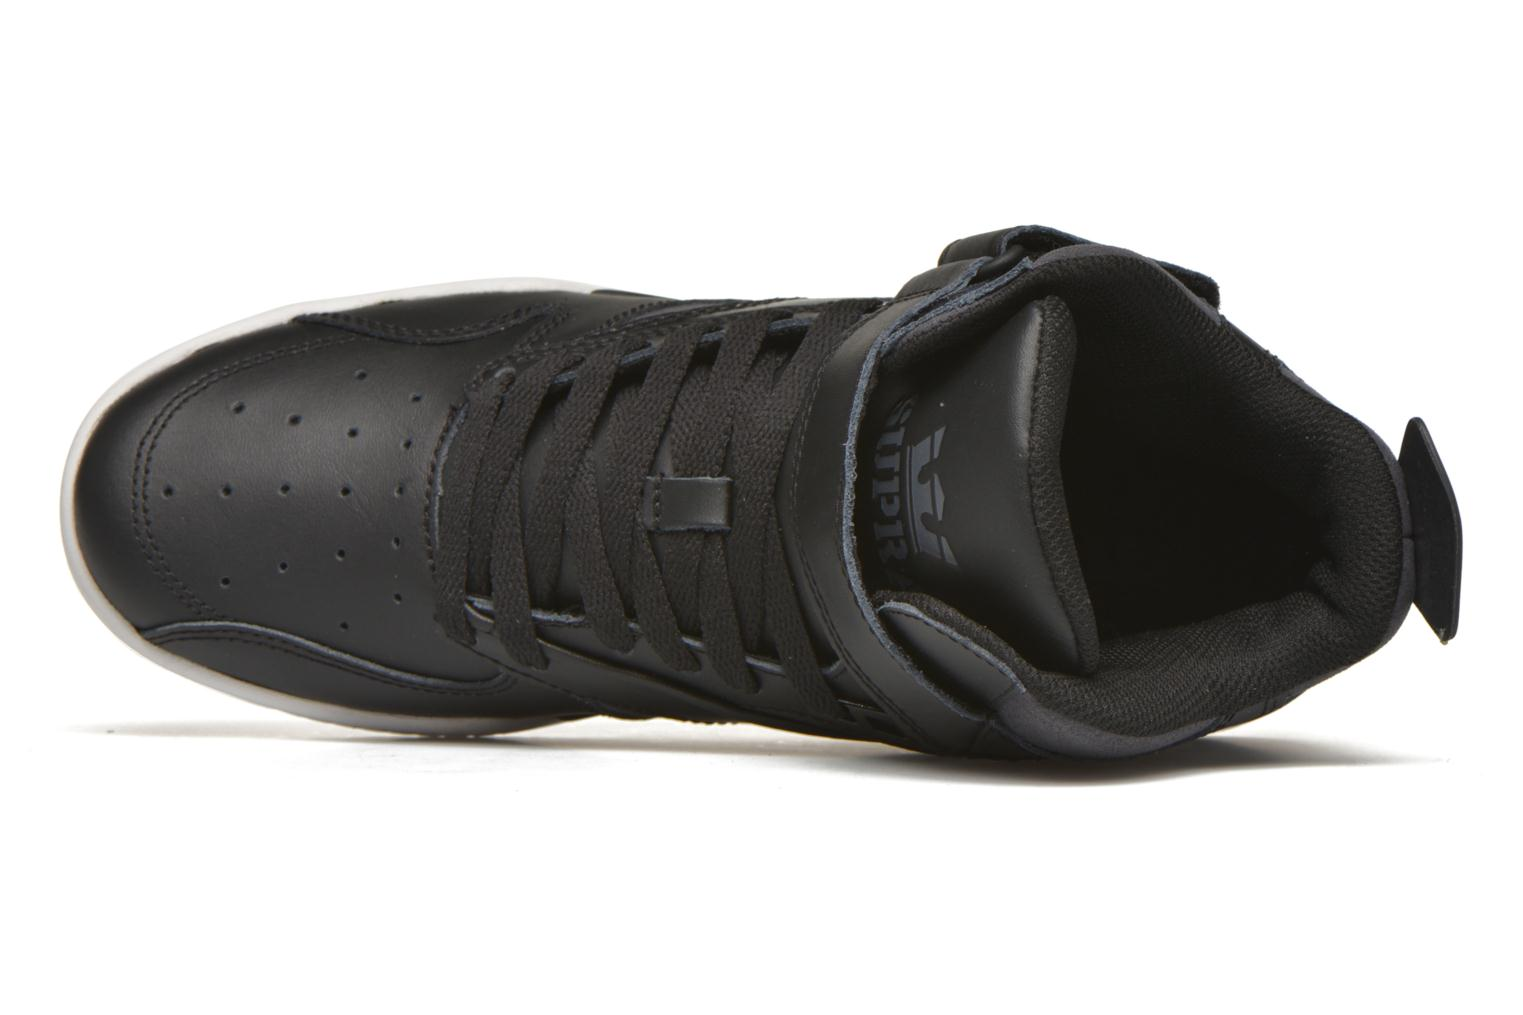 Bleeker Black/charcoal/white